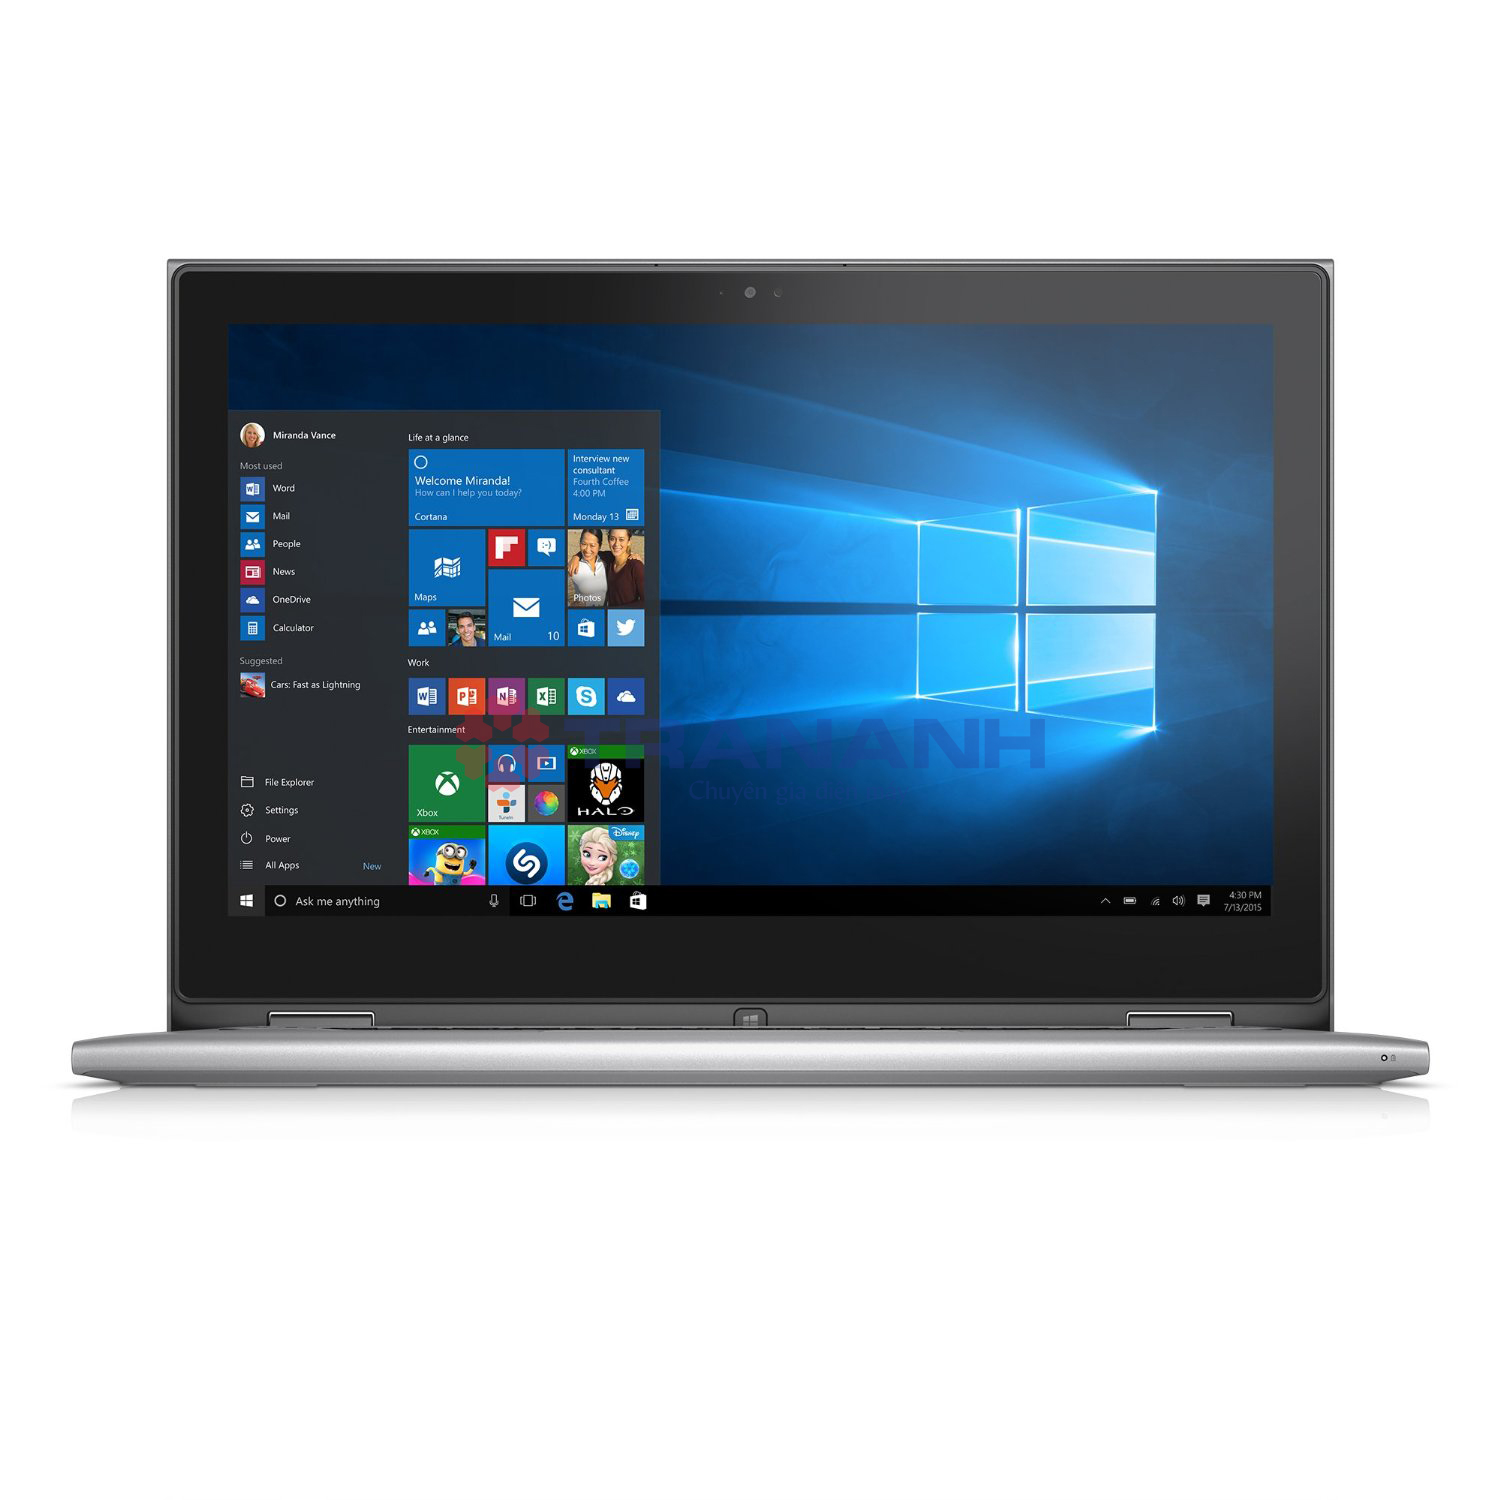 Laptop Dell Inspiron 7359 (C3I5019W) (i5-62000U, 4GB, 500GB, Intel HD 520, 13.3, Touch Screen)